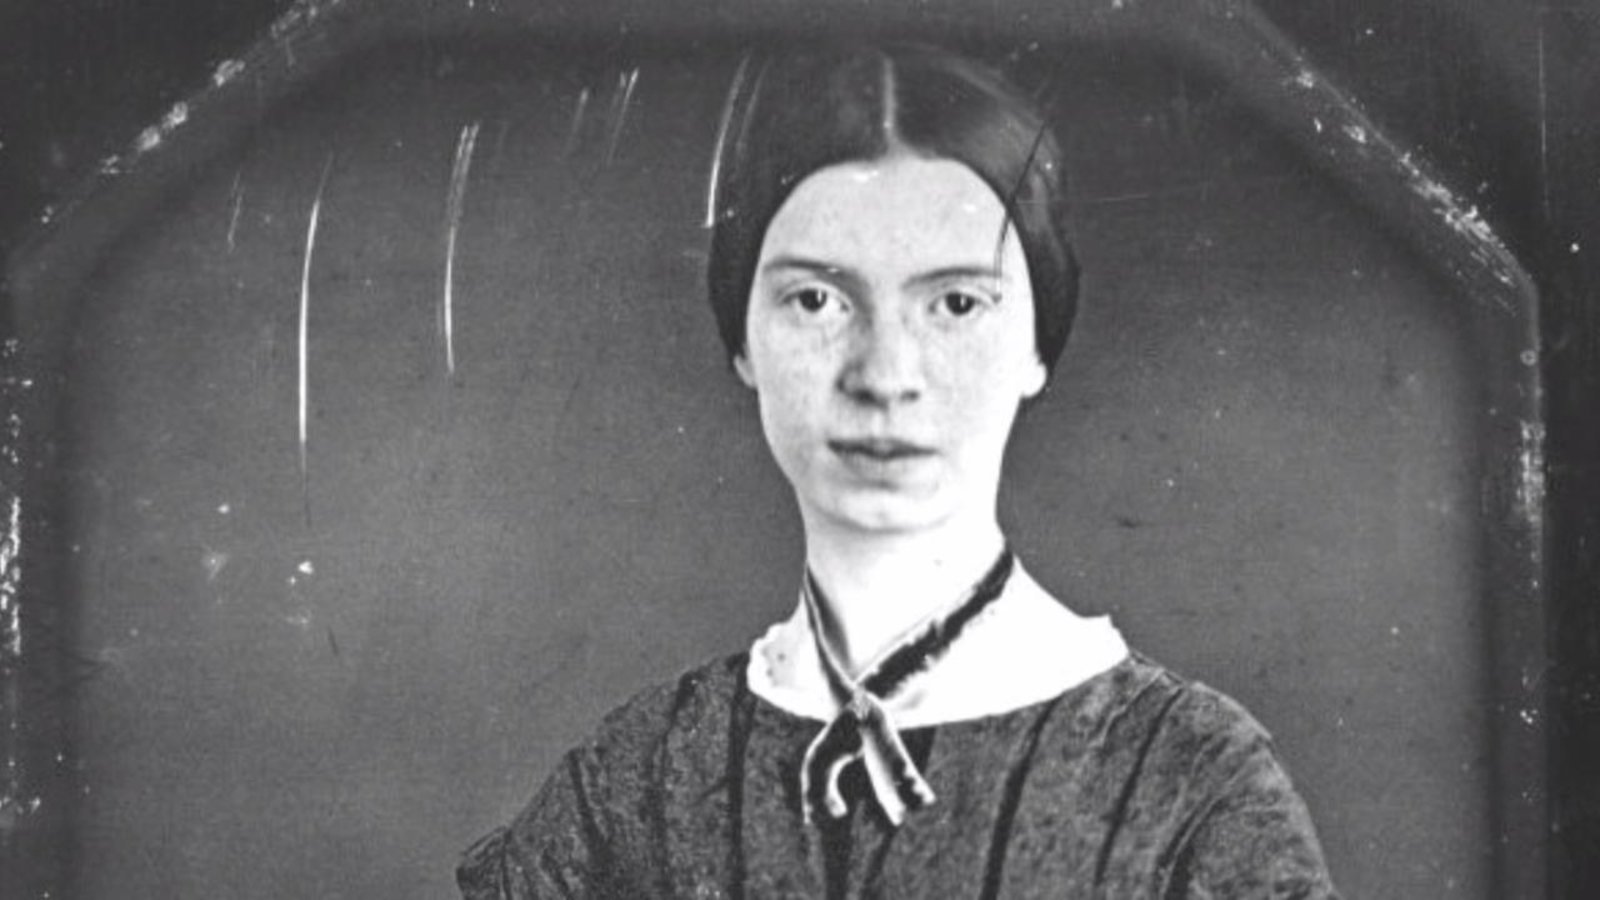 Dickinson - The Life and Work of Emily Dickinson